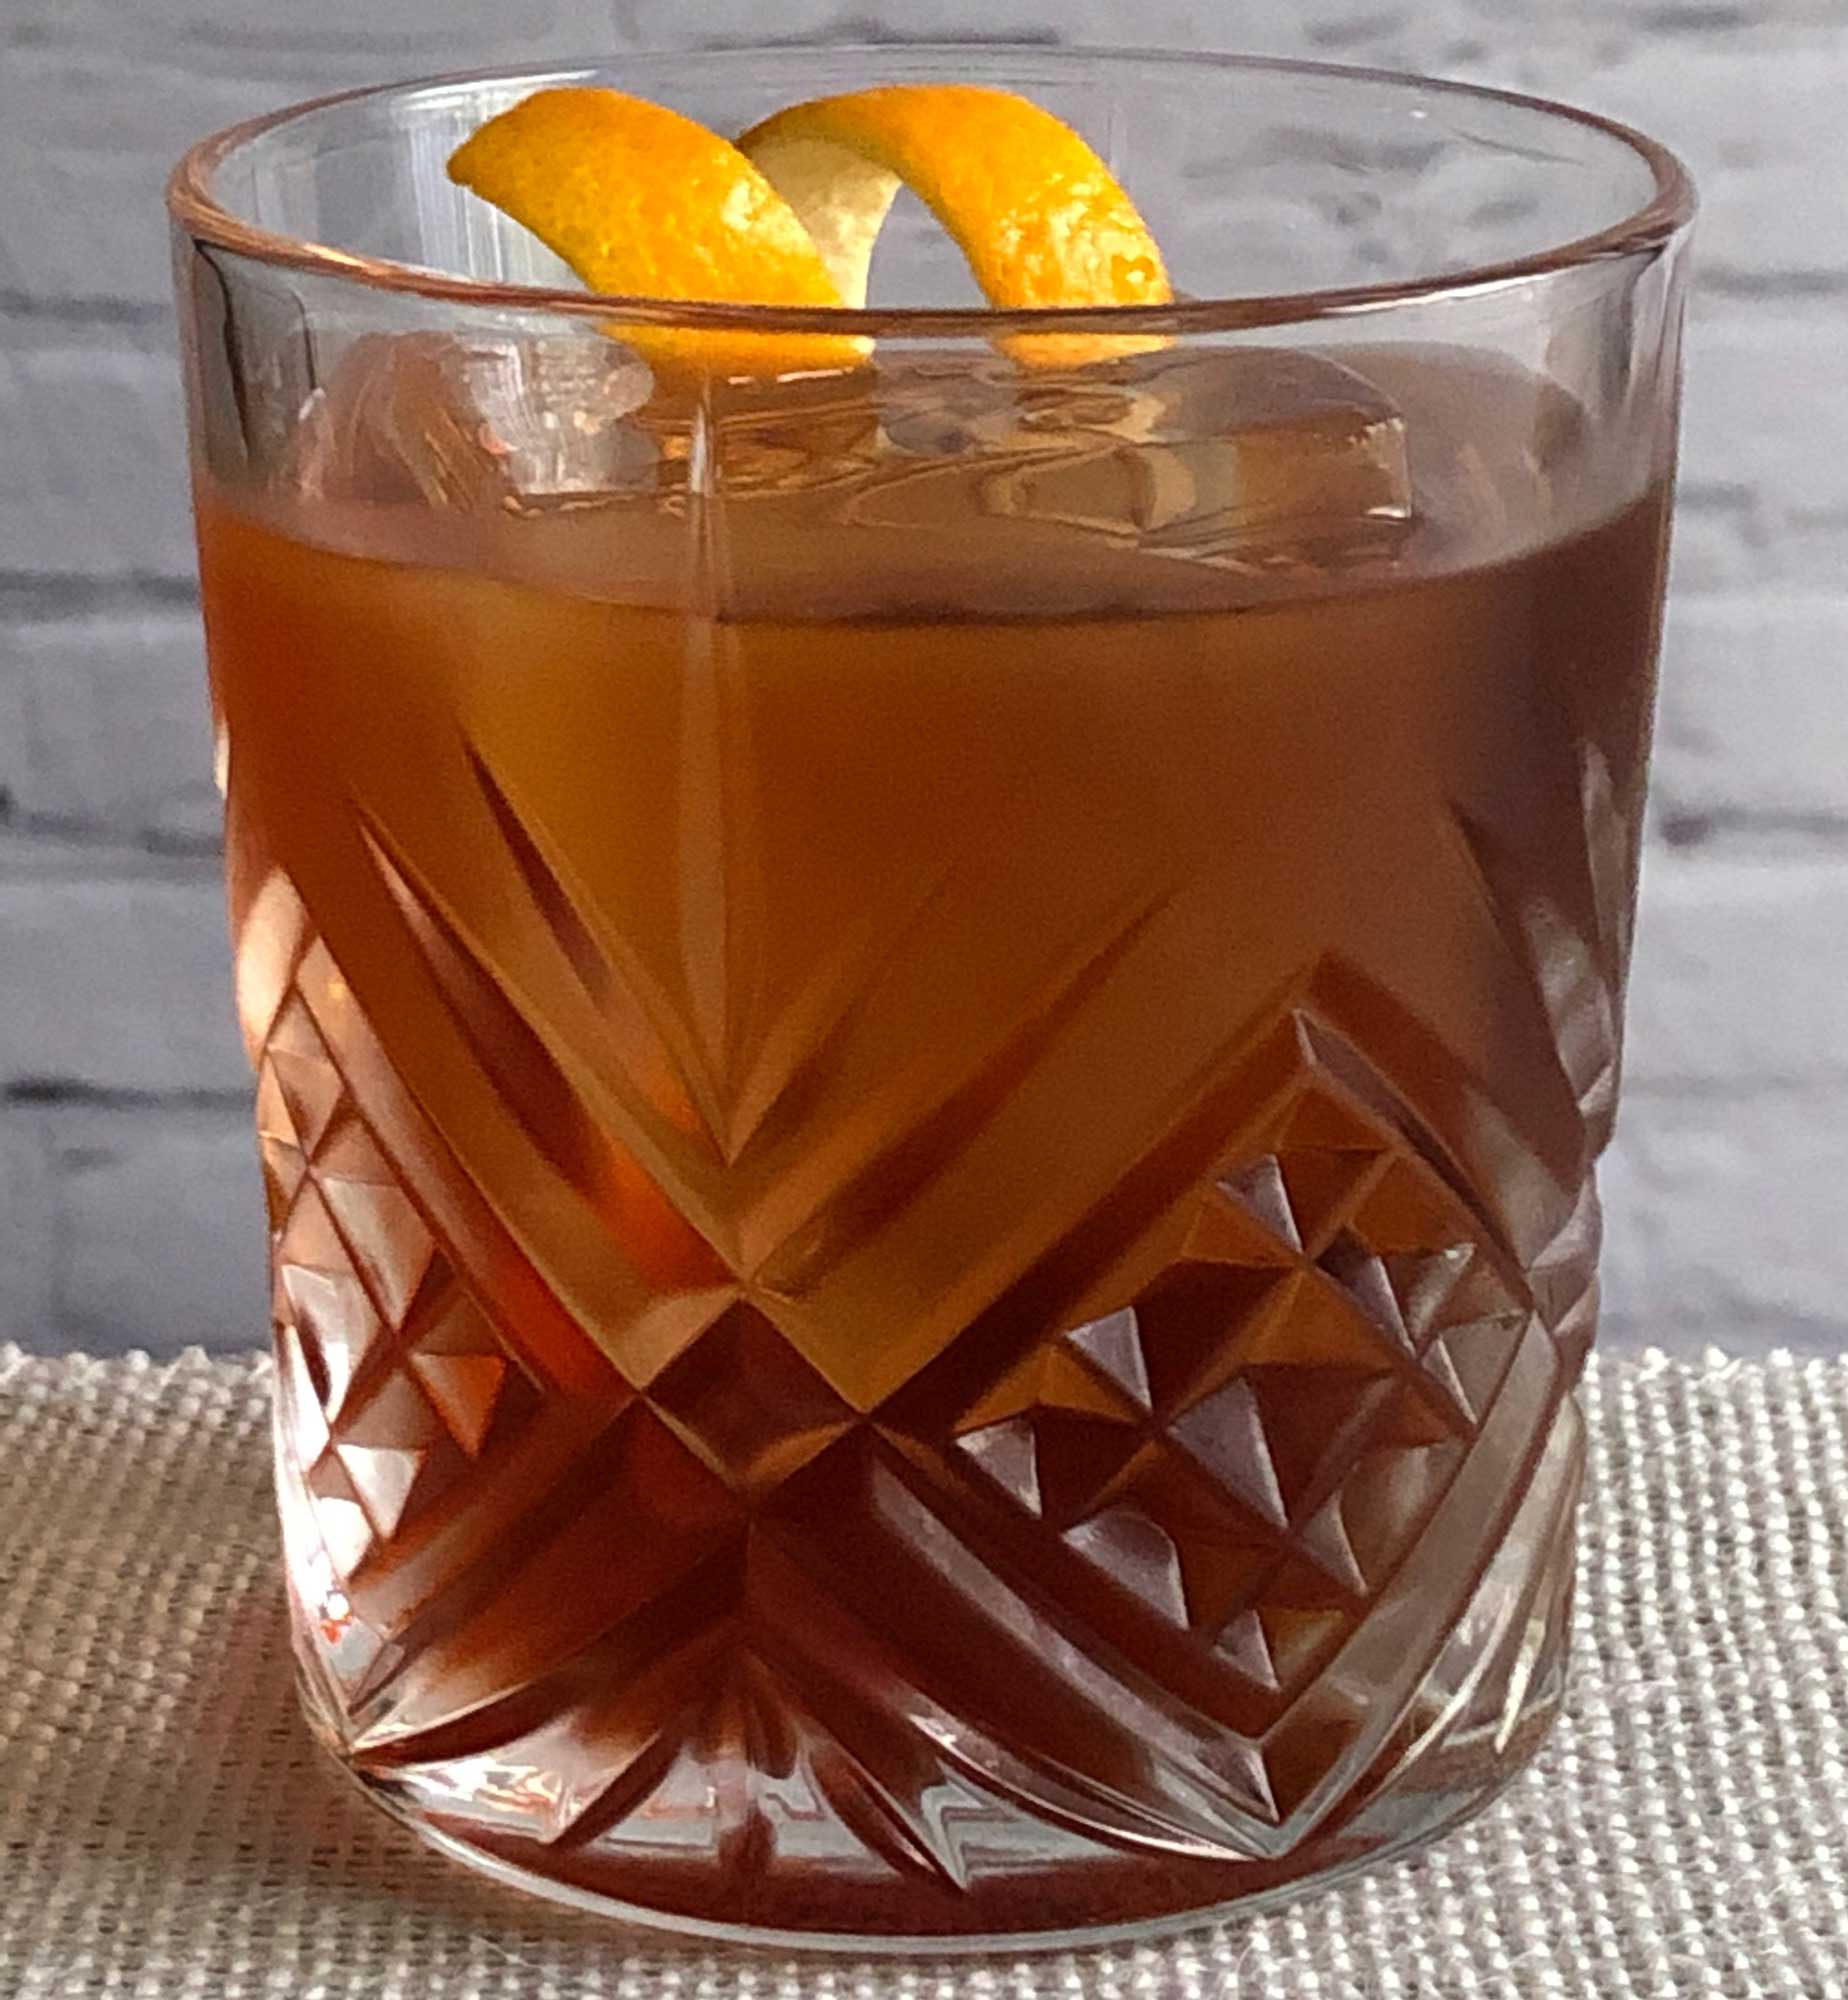 An example of the Petit Boulevardier, the mixed drink (cocktail) featuring Cardamaro Vino Amaro, Dolin Rouge Vermouth de Chambéry, and Aperitivo Cappelletti; photo by Lee Edwards